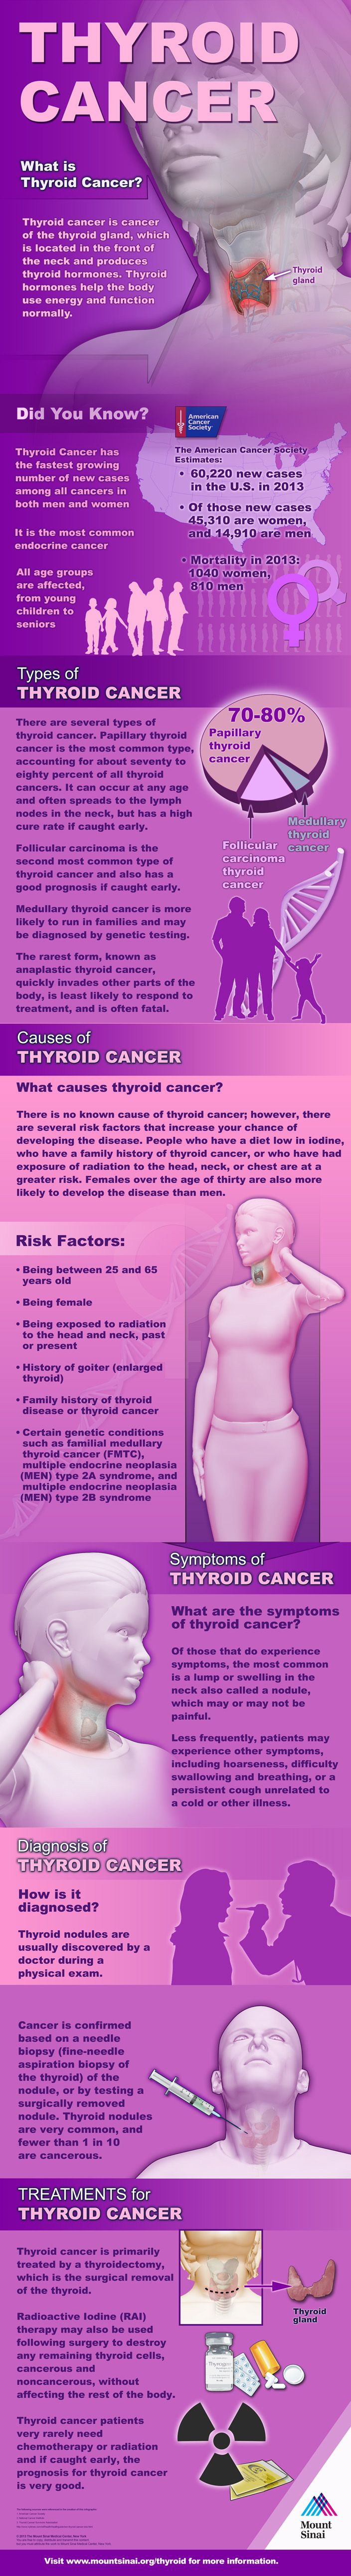 thyroid cancer in women essay Read this full essay on thyroid cancer thyroid cancer is a  women are at a  higher risk than men, and most cases occur in people ages 30-50 scientists  have.